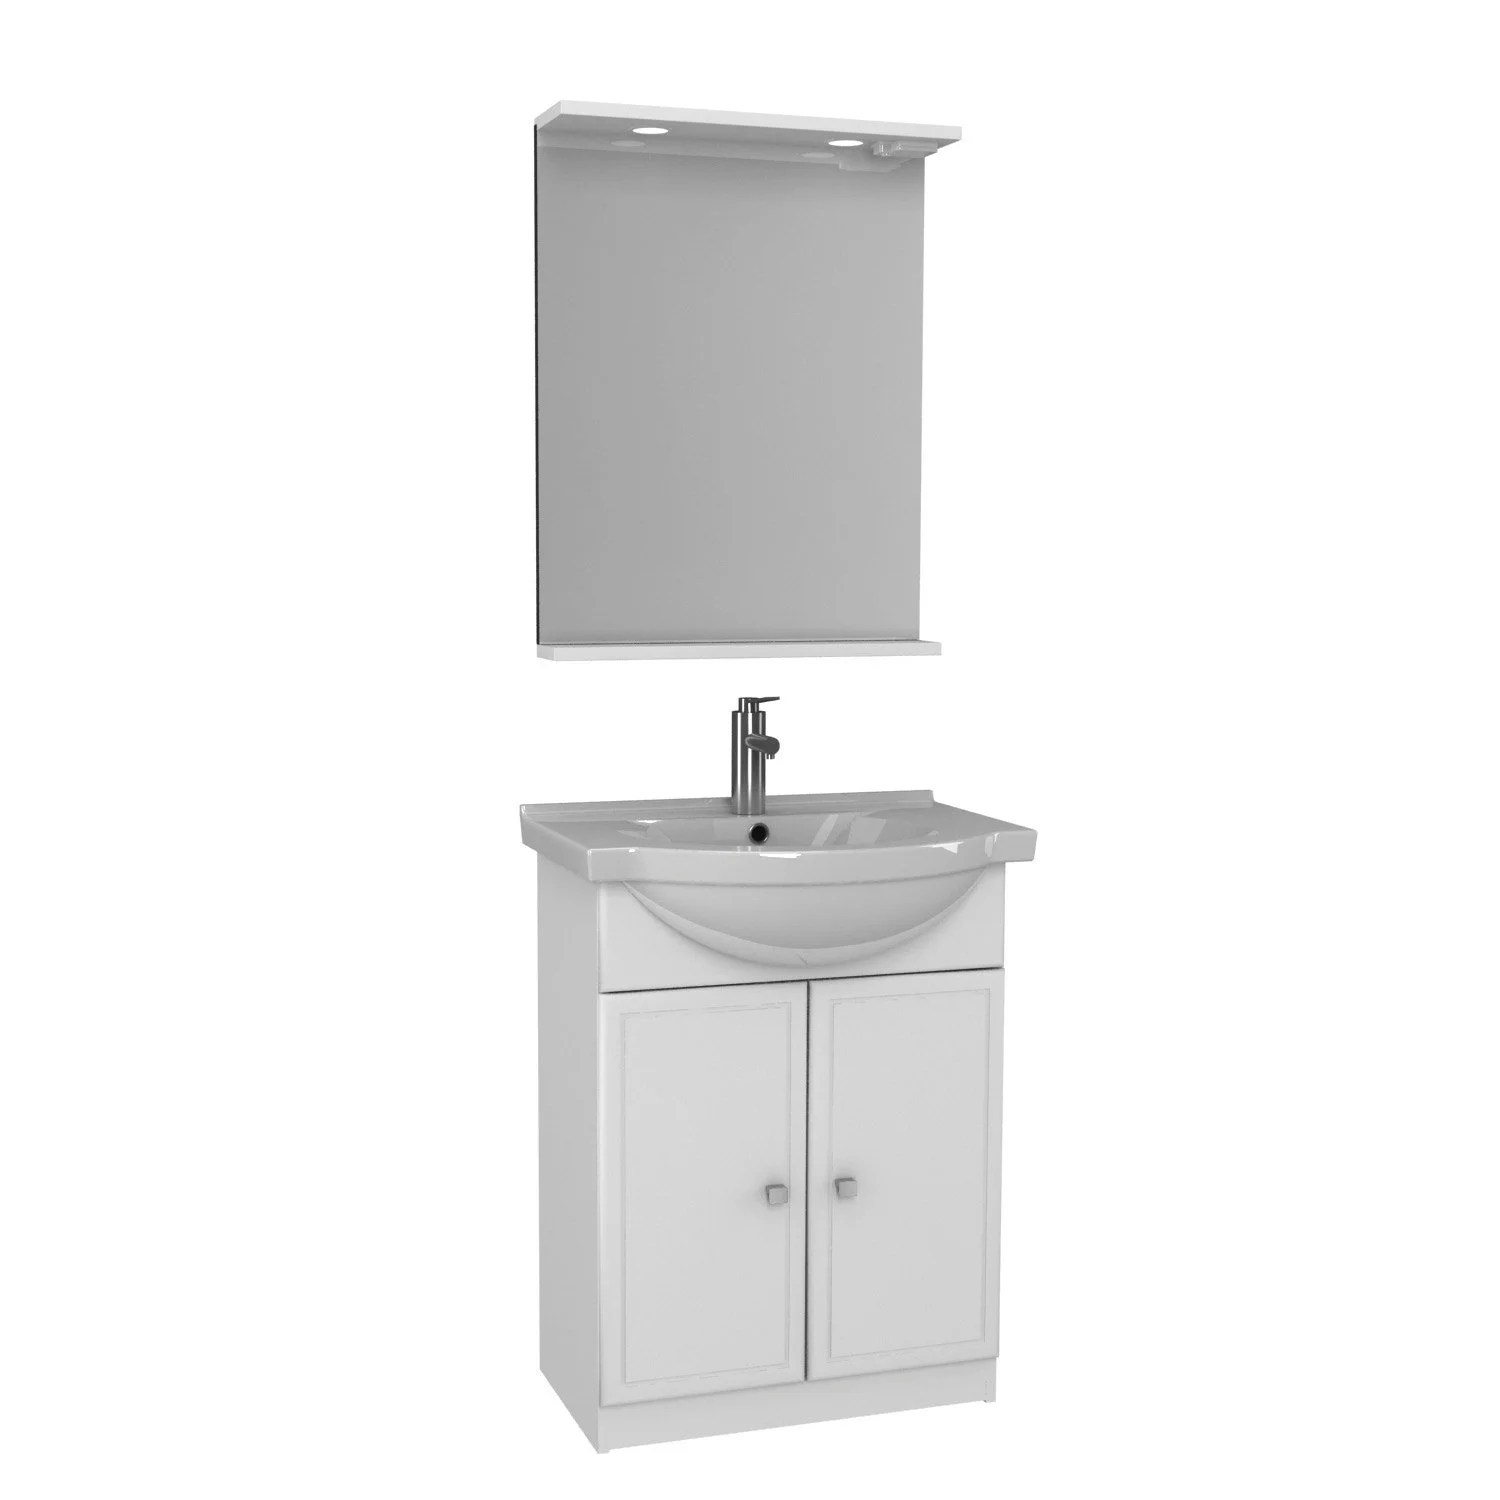 Meuble Vasque 65 Cm Blanc Galice Leroy Merlin